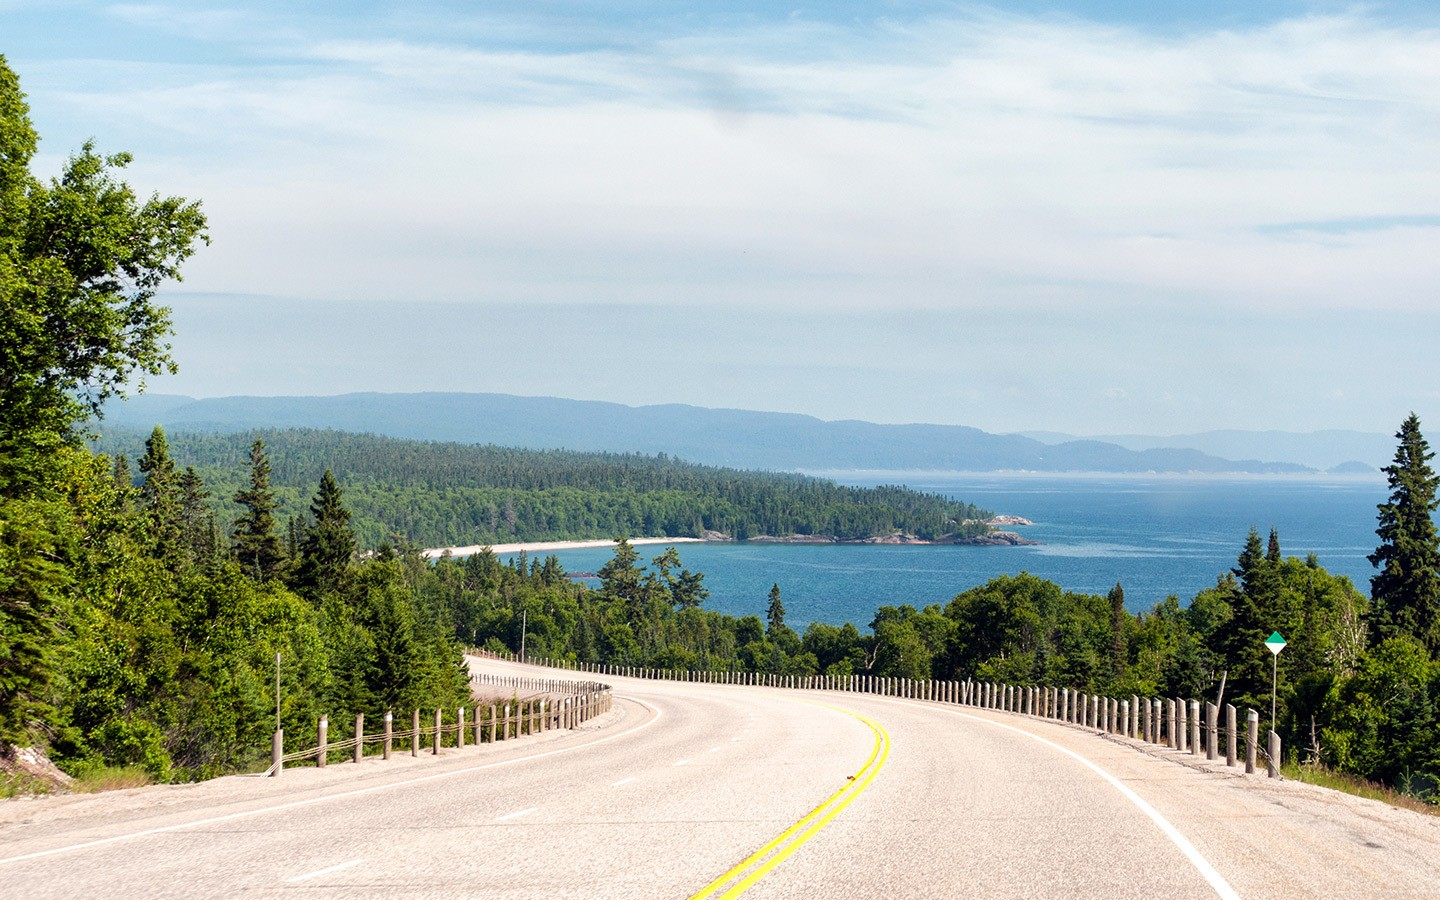 Views of the road to Lake Superior